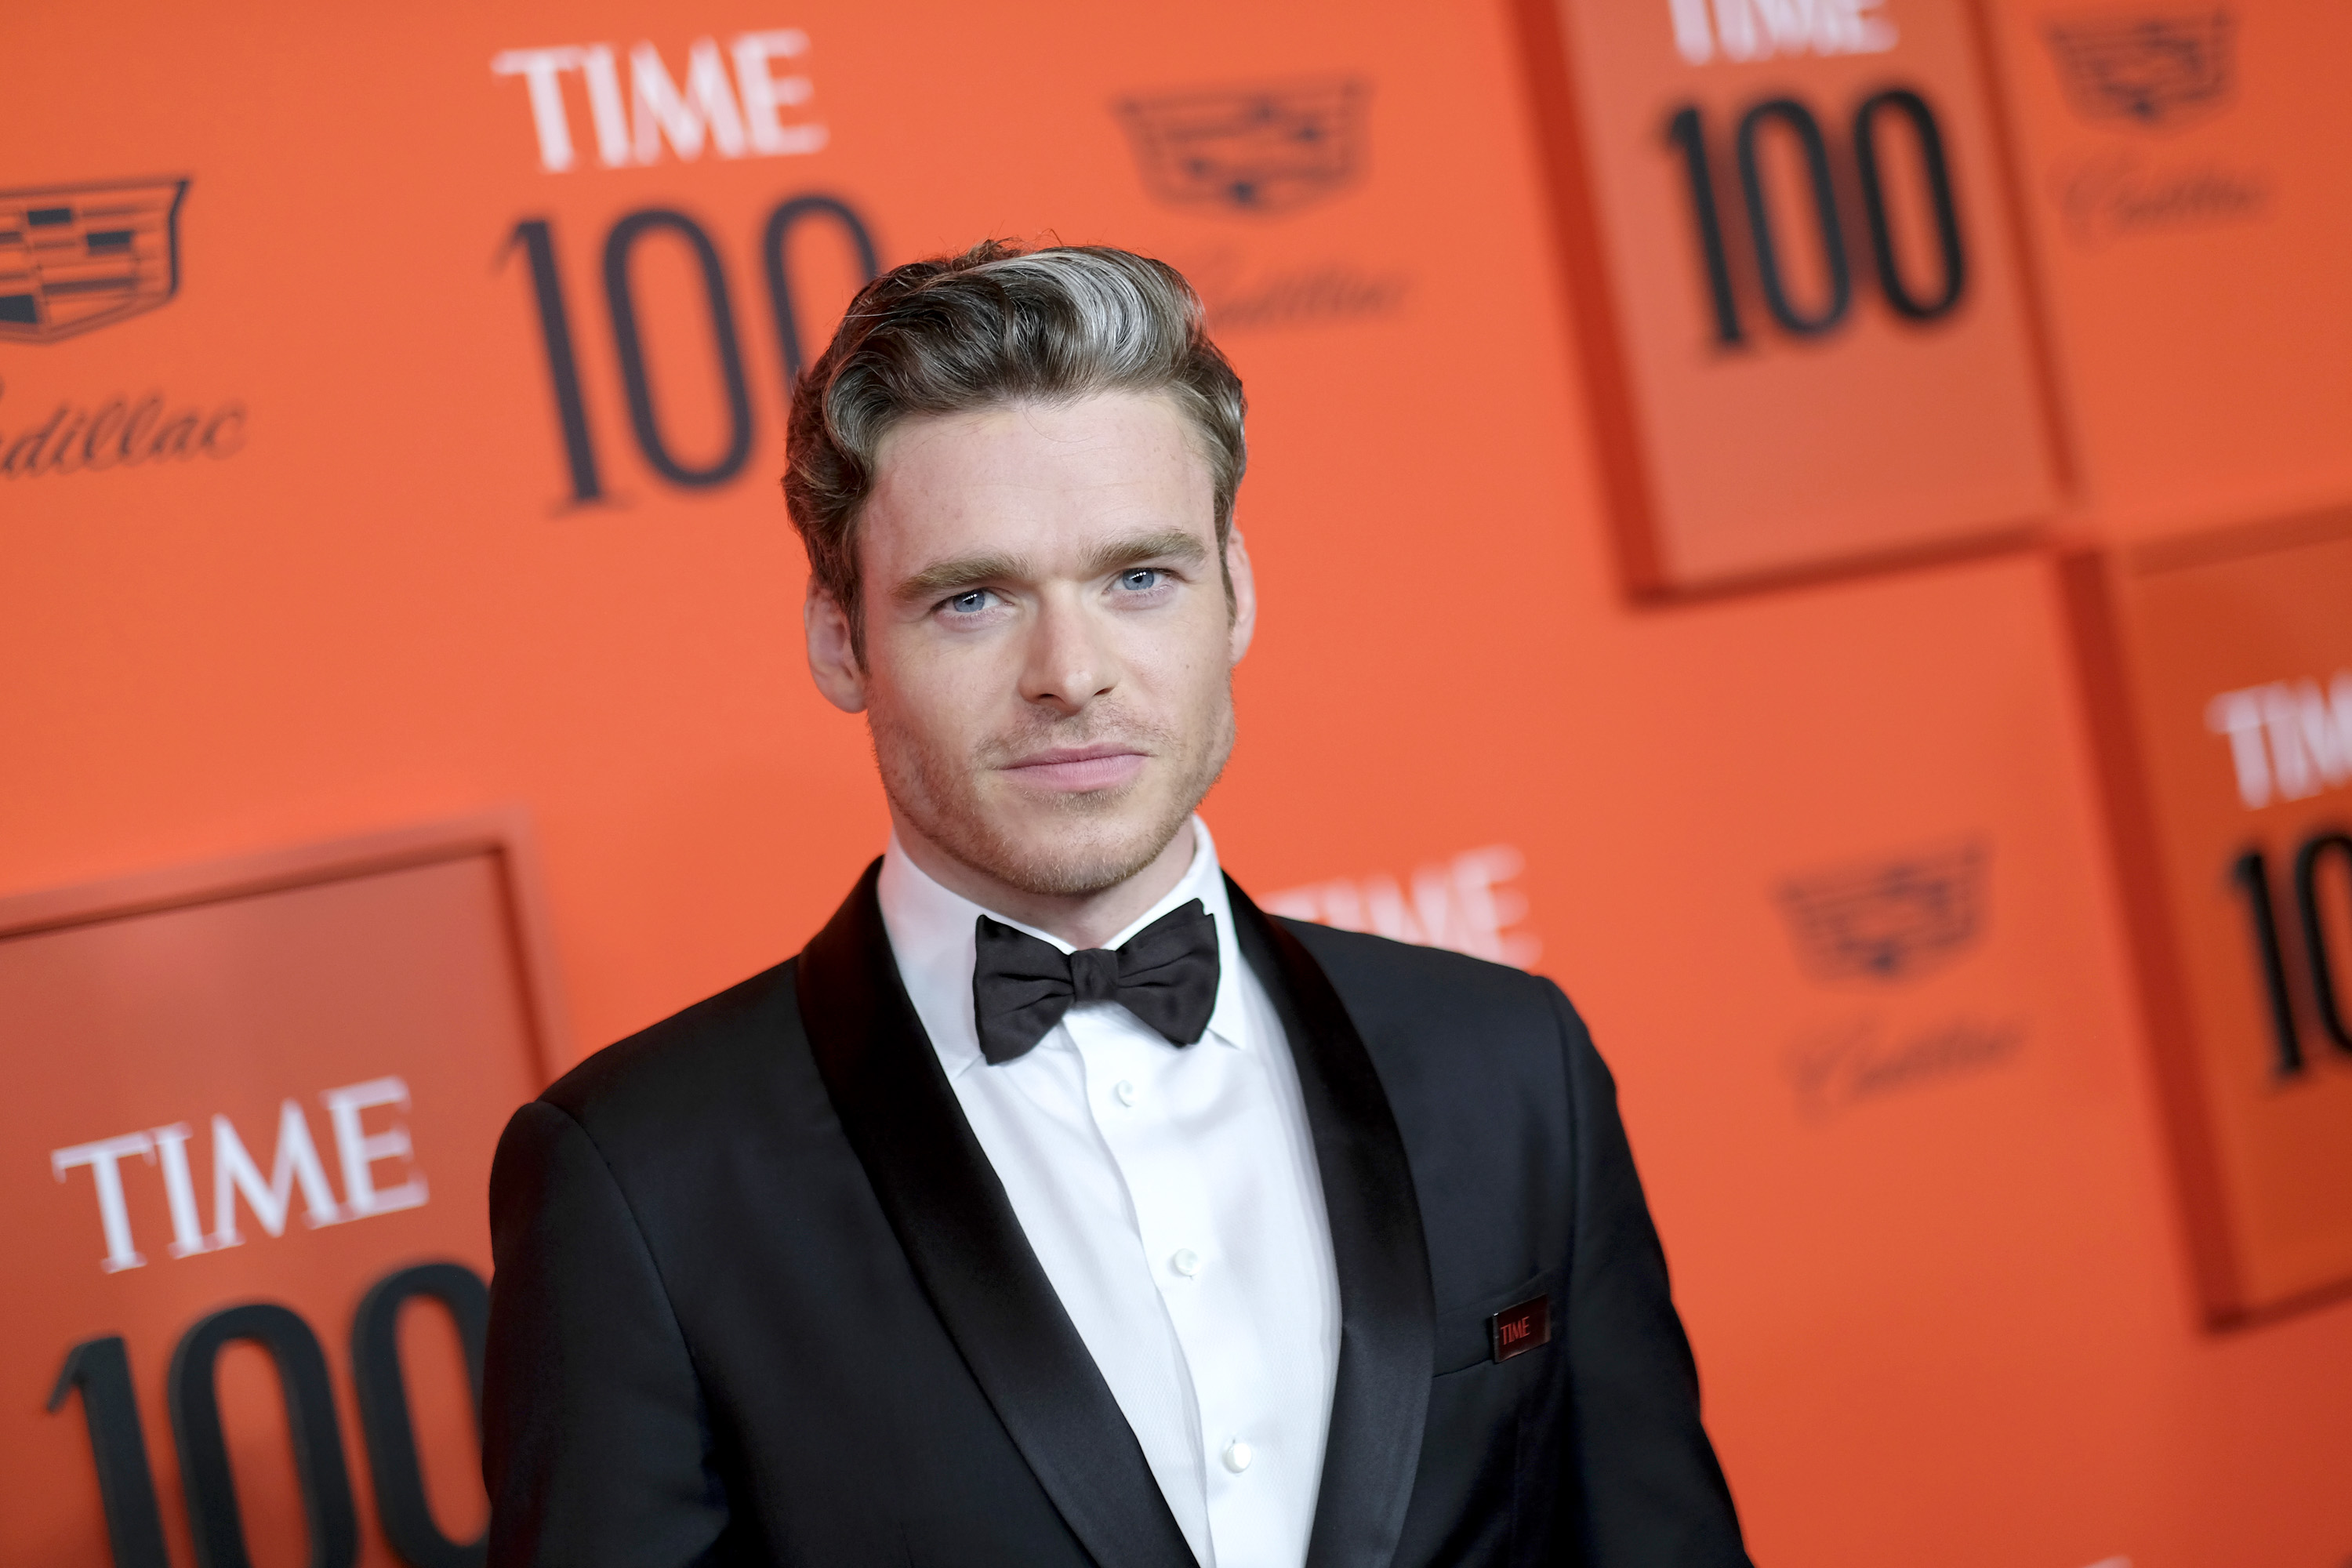 Richard Madden set for major role in Marvel's Eternals